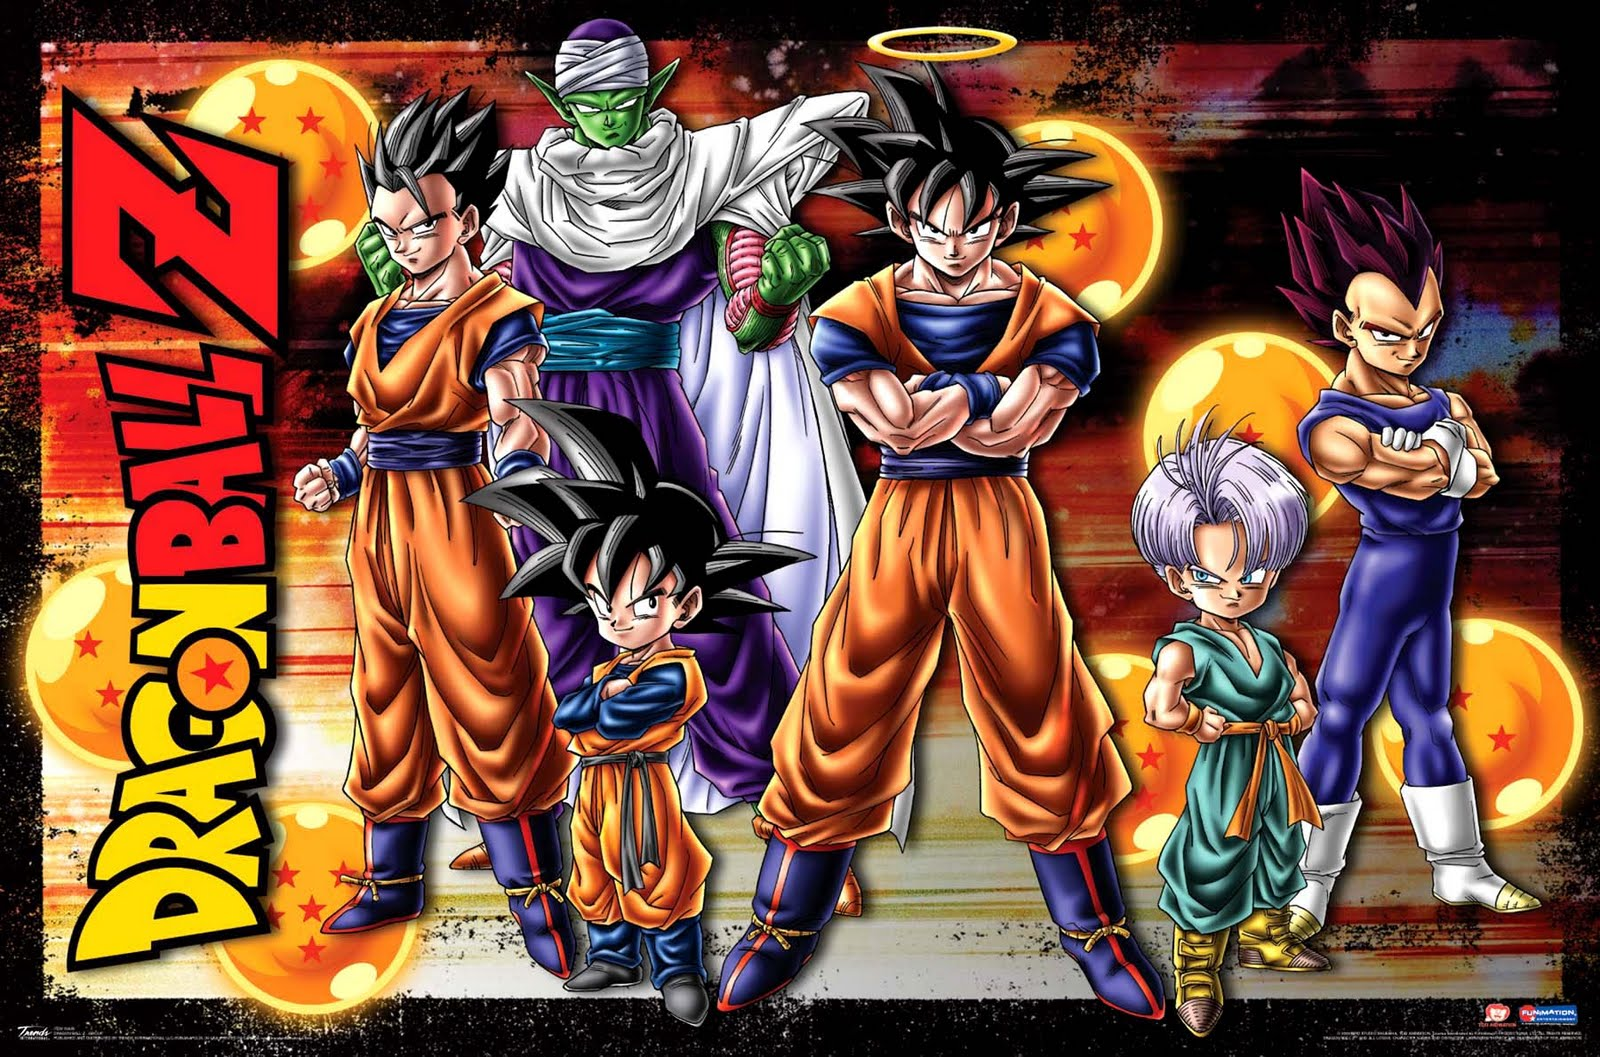 Dragon ball z theme song download for mp3.